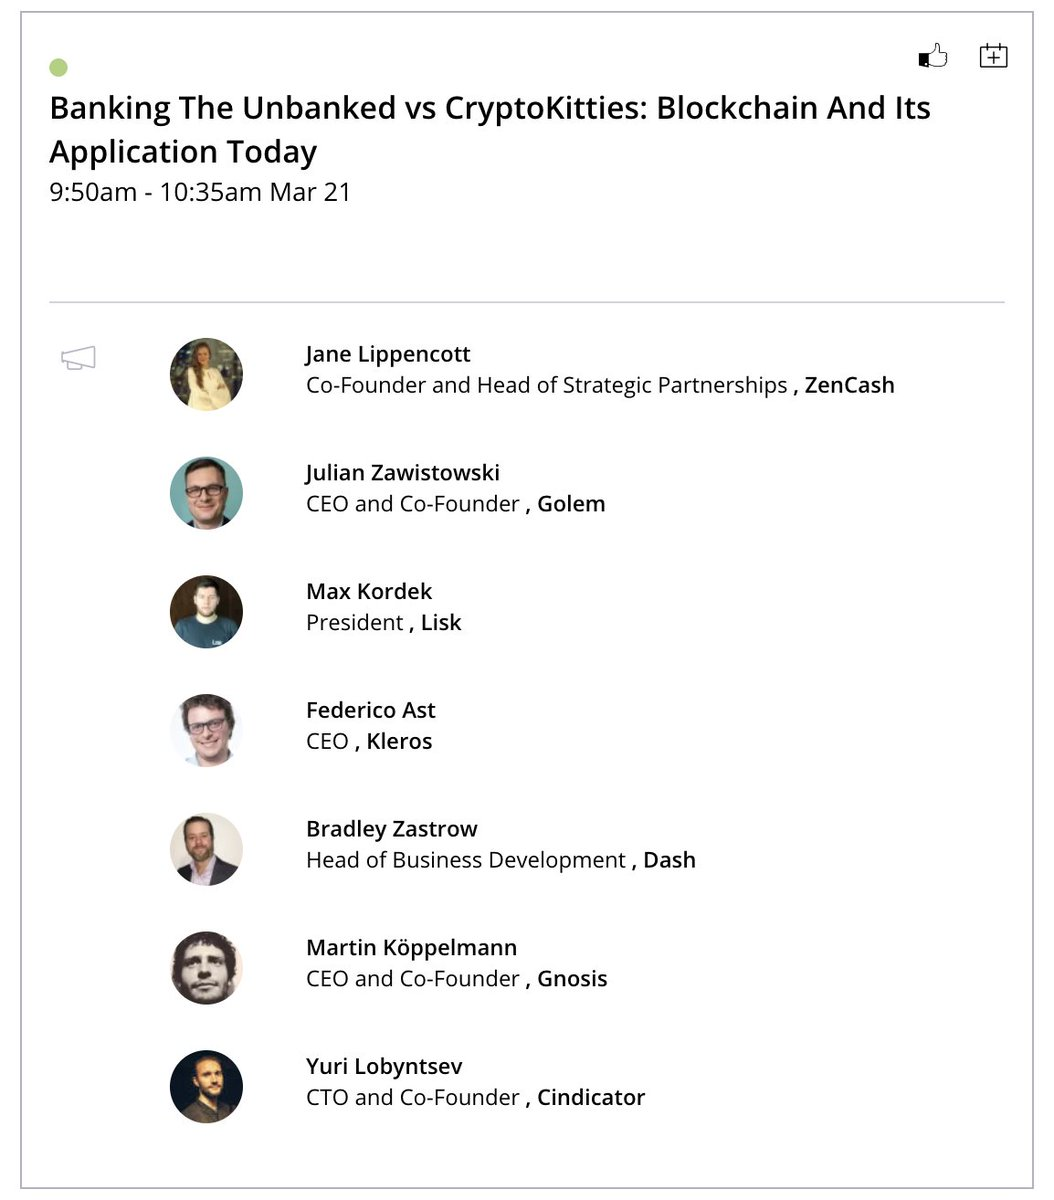 """Don't forget to catch Julian and this outstanding panel at @token2049 tomorrow at 9:50 am local time #HongKong """"Banking the Unbanked vs. Cryptokitties: Blockchain and its Application today"""" cc @LiskHQ @Kleros_io @gnosisPM @Crowd_indicator @Dashpay @zencashofficial"""